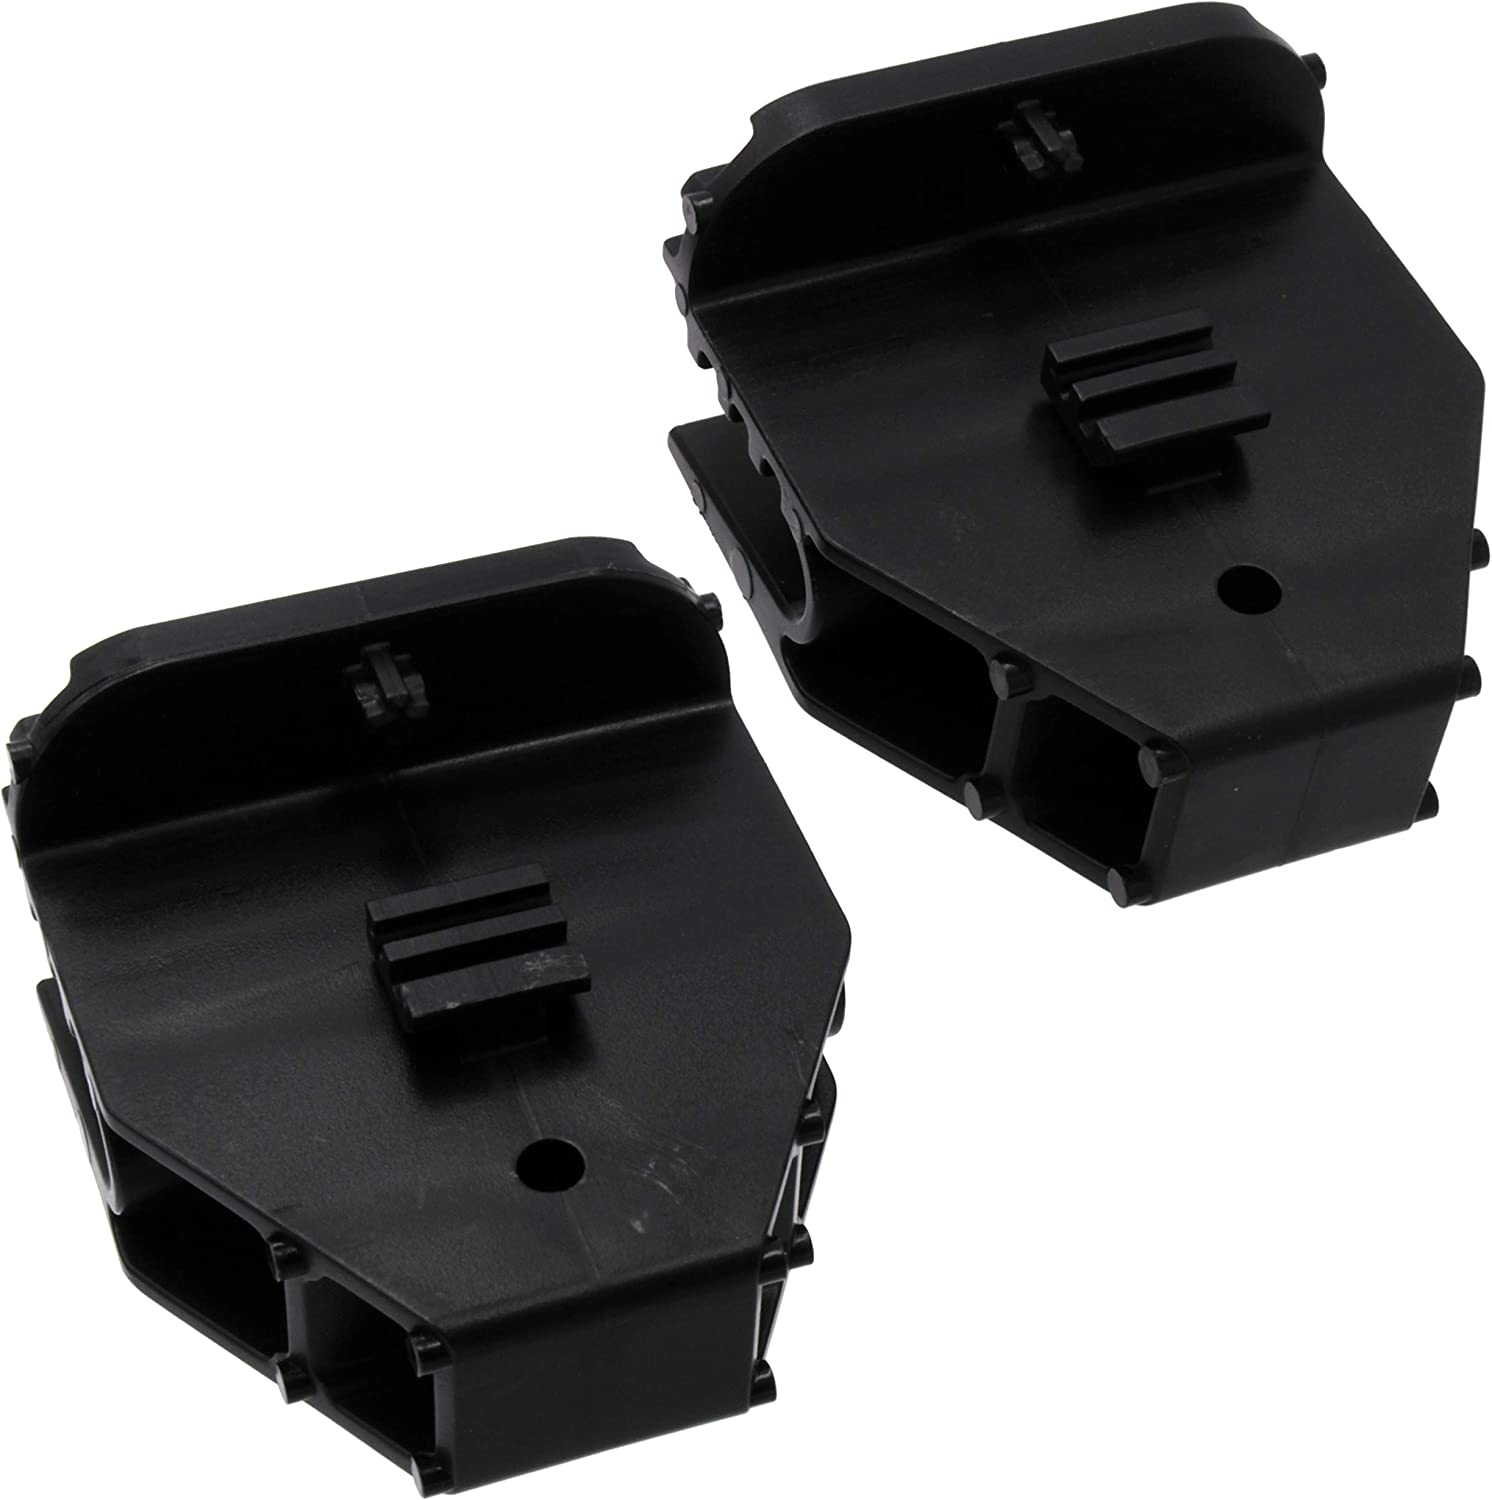 Supplying Demand W10807828 2 Pack Drawer Glides Compatible With Whirlpool Fits PS11722960, W1067470